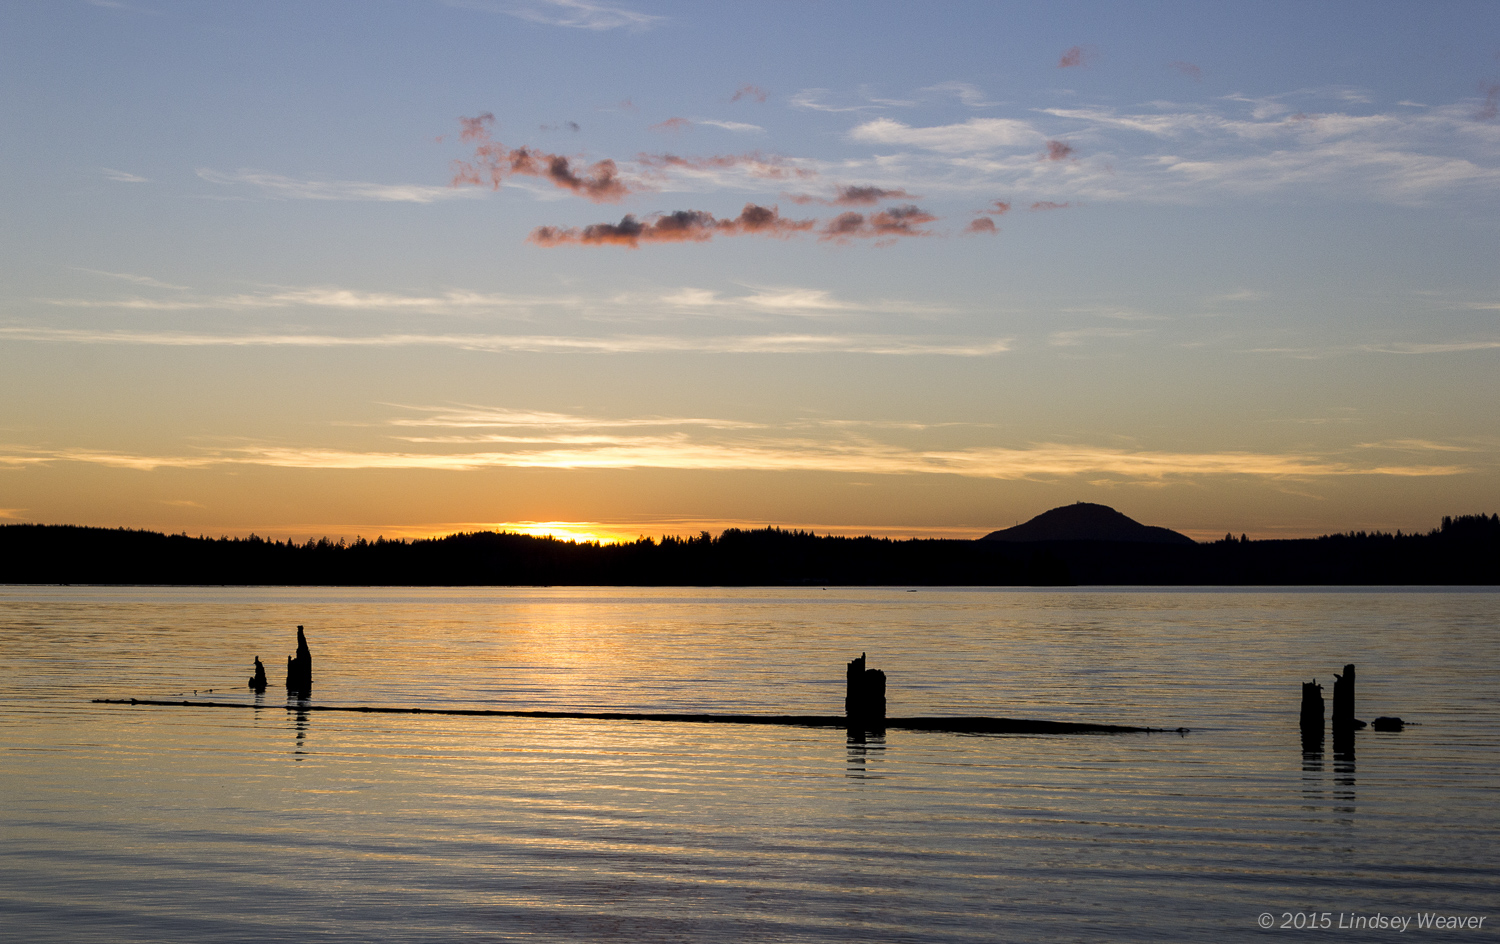 Sunset over Lake Quinault